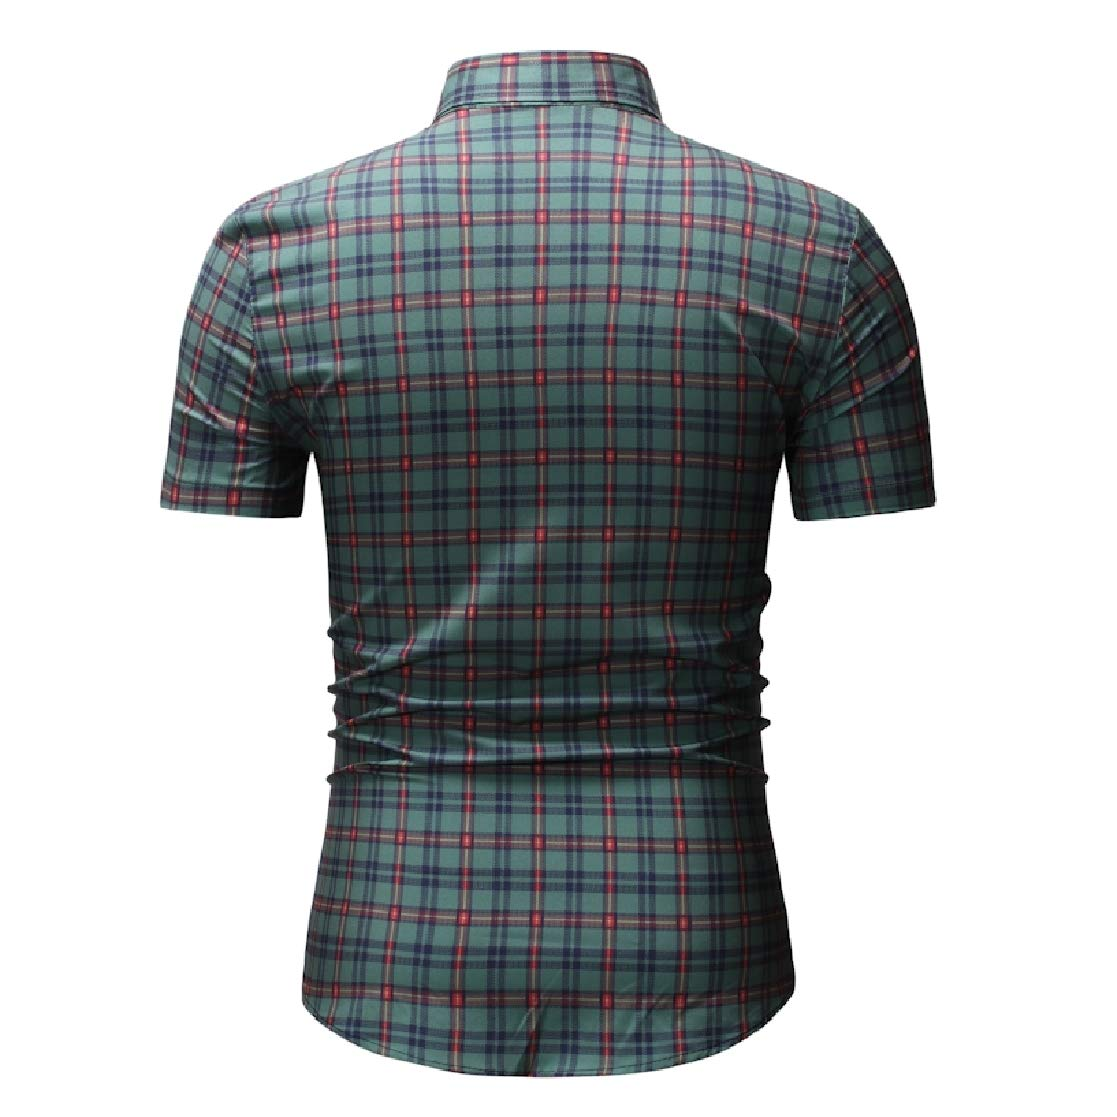 YUNY Mens Oversize Short-Sleeve Britain Plaid Summer Tee Polo Shirt Green M